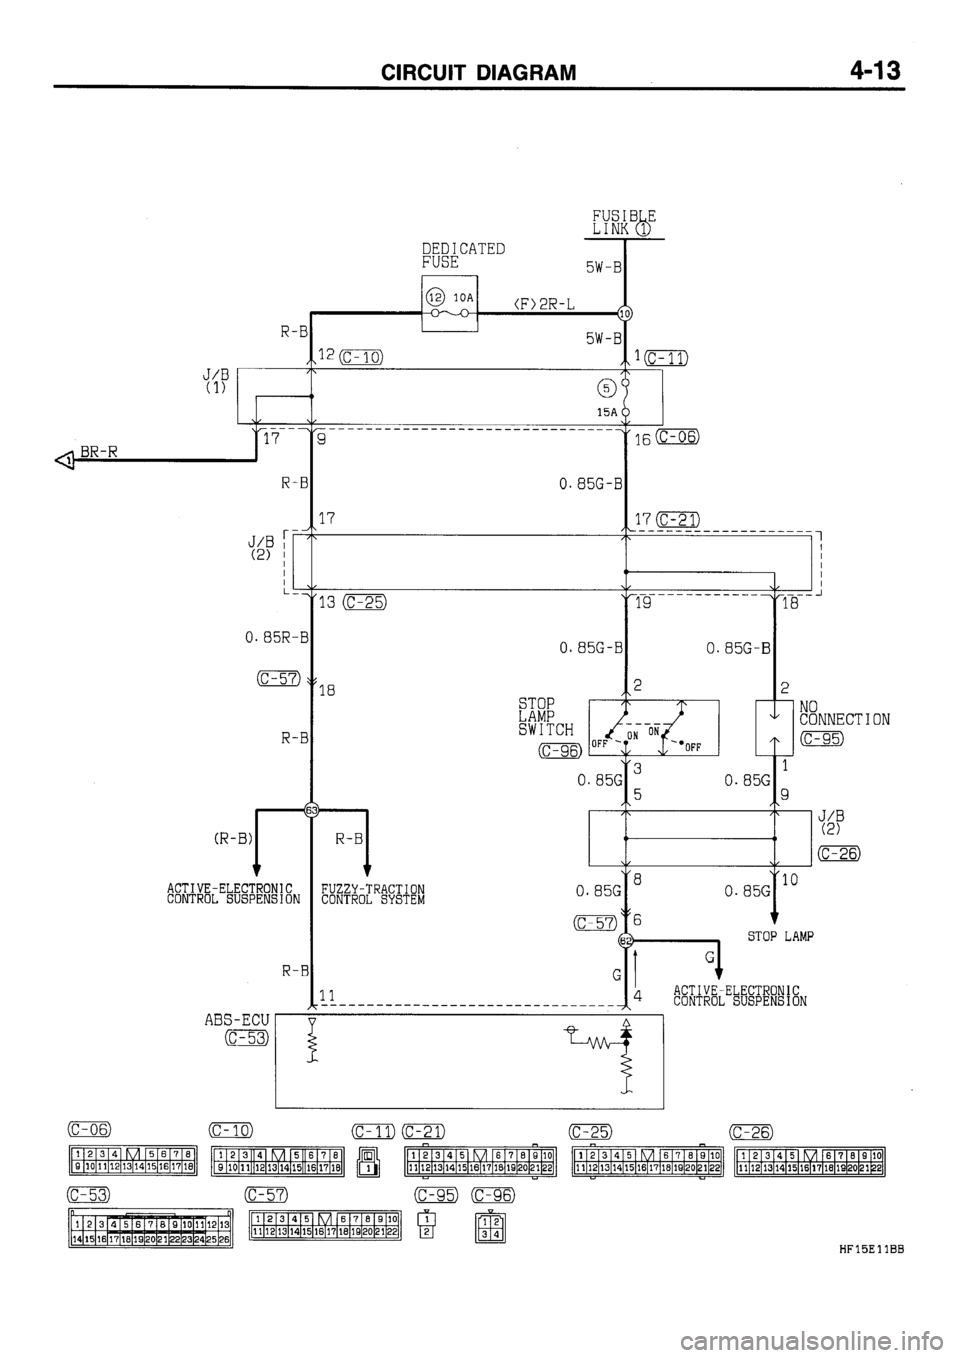 95 galant wiring diagram 95 condenser fan motor wiring diagram A Picture of a 95 Mitsubishi Galant 95 mitsubishi galant wiring diagram Pics of a 95 Mitsubishi Galant on 95 galant wiring diagram